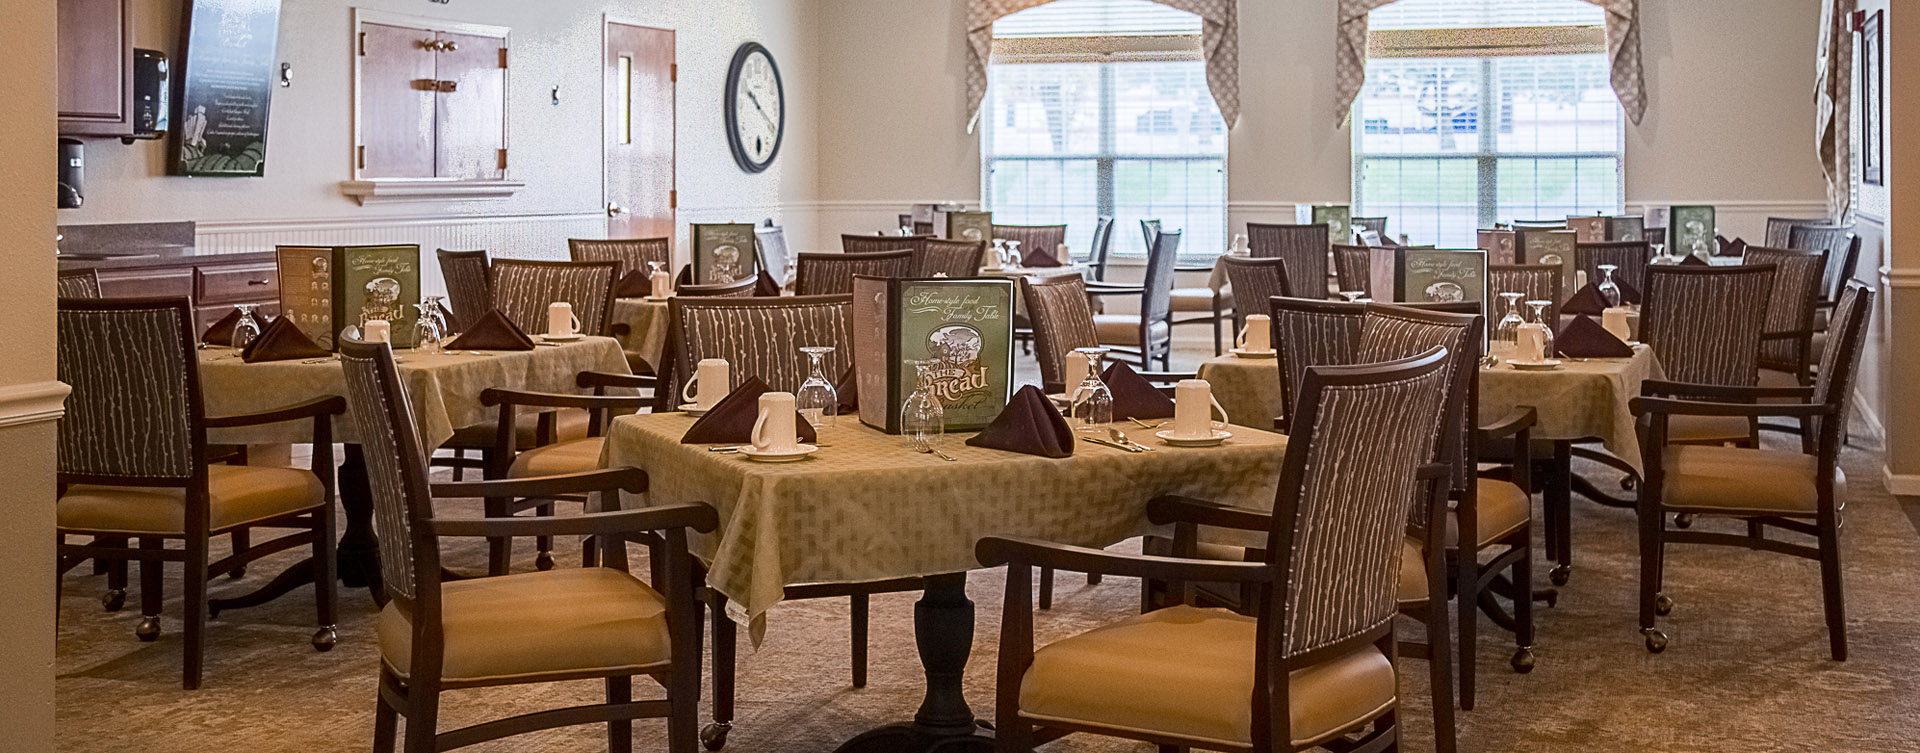 Enjoy restaurant -style meals served three times a day in our dining room at Bickford of Davenport